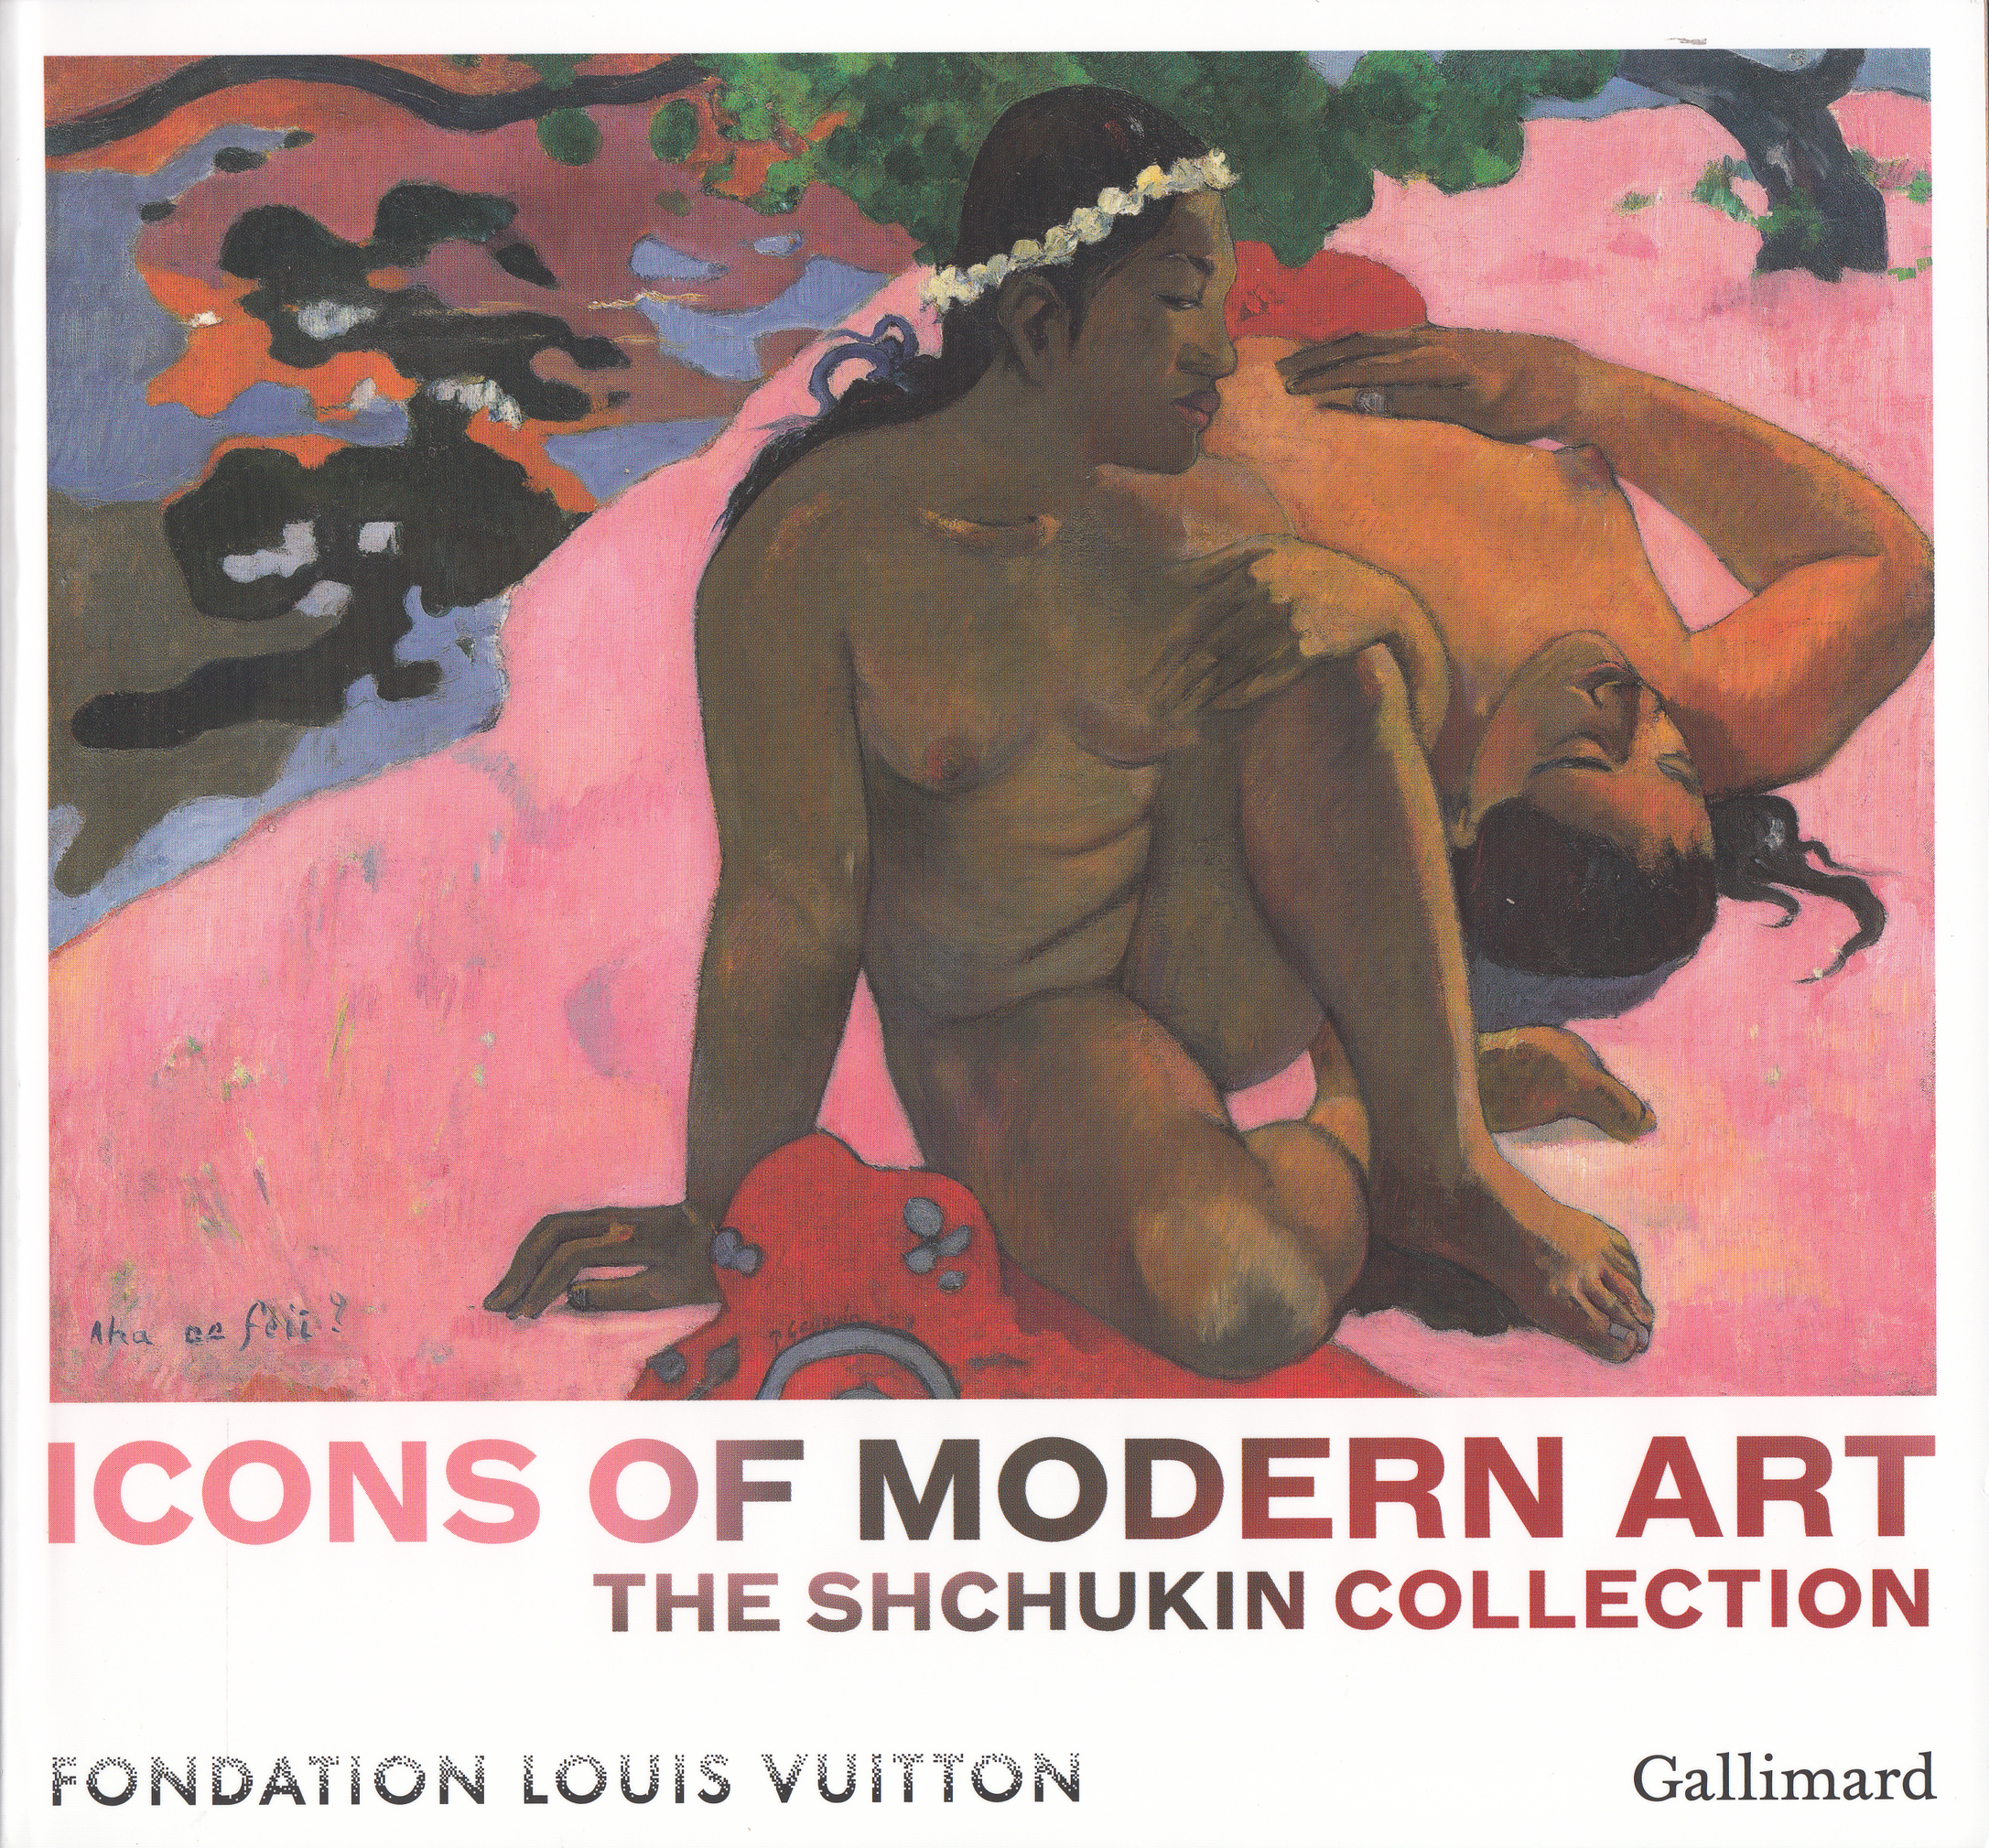 ICONS OF MODERN ART (NOUVELLE EDITION BROCHEE)